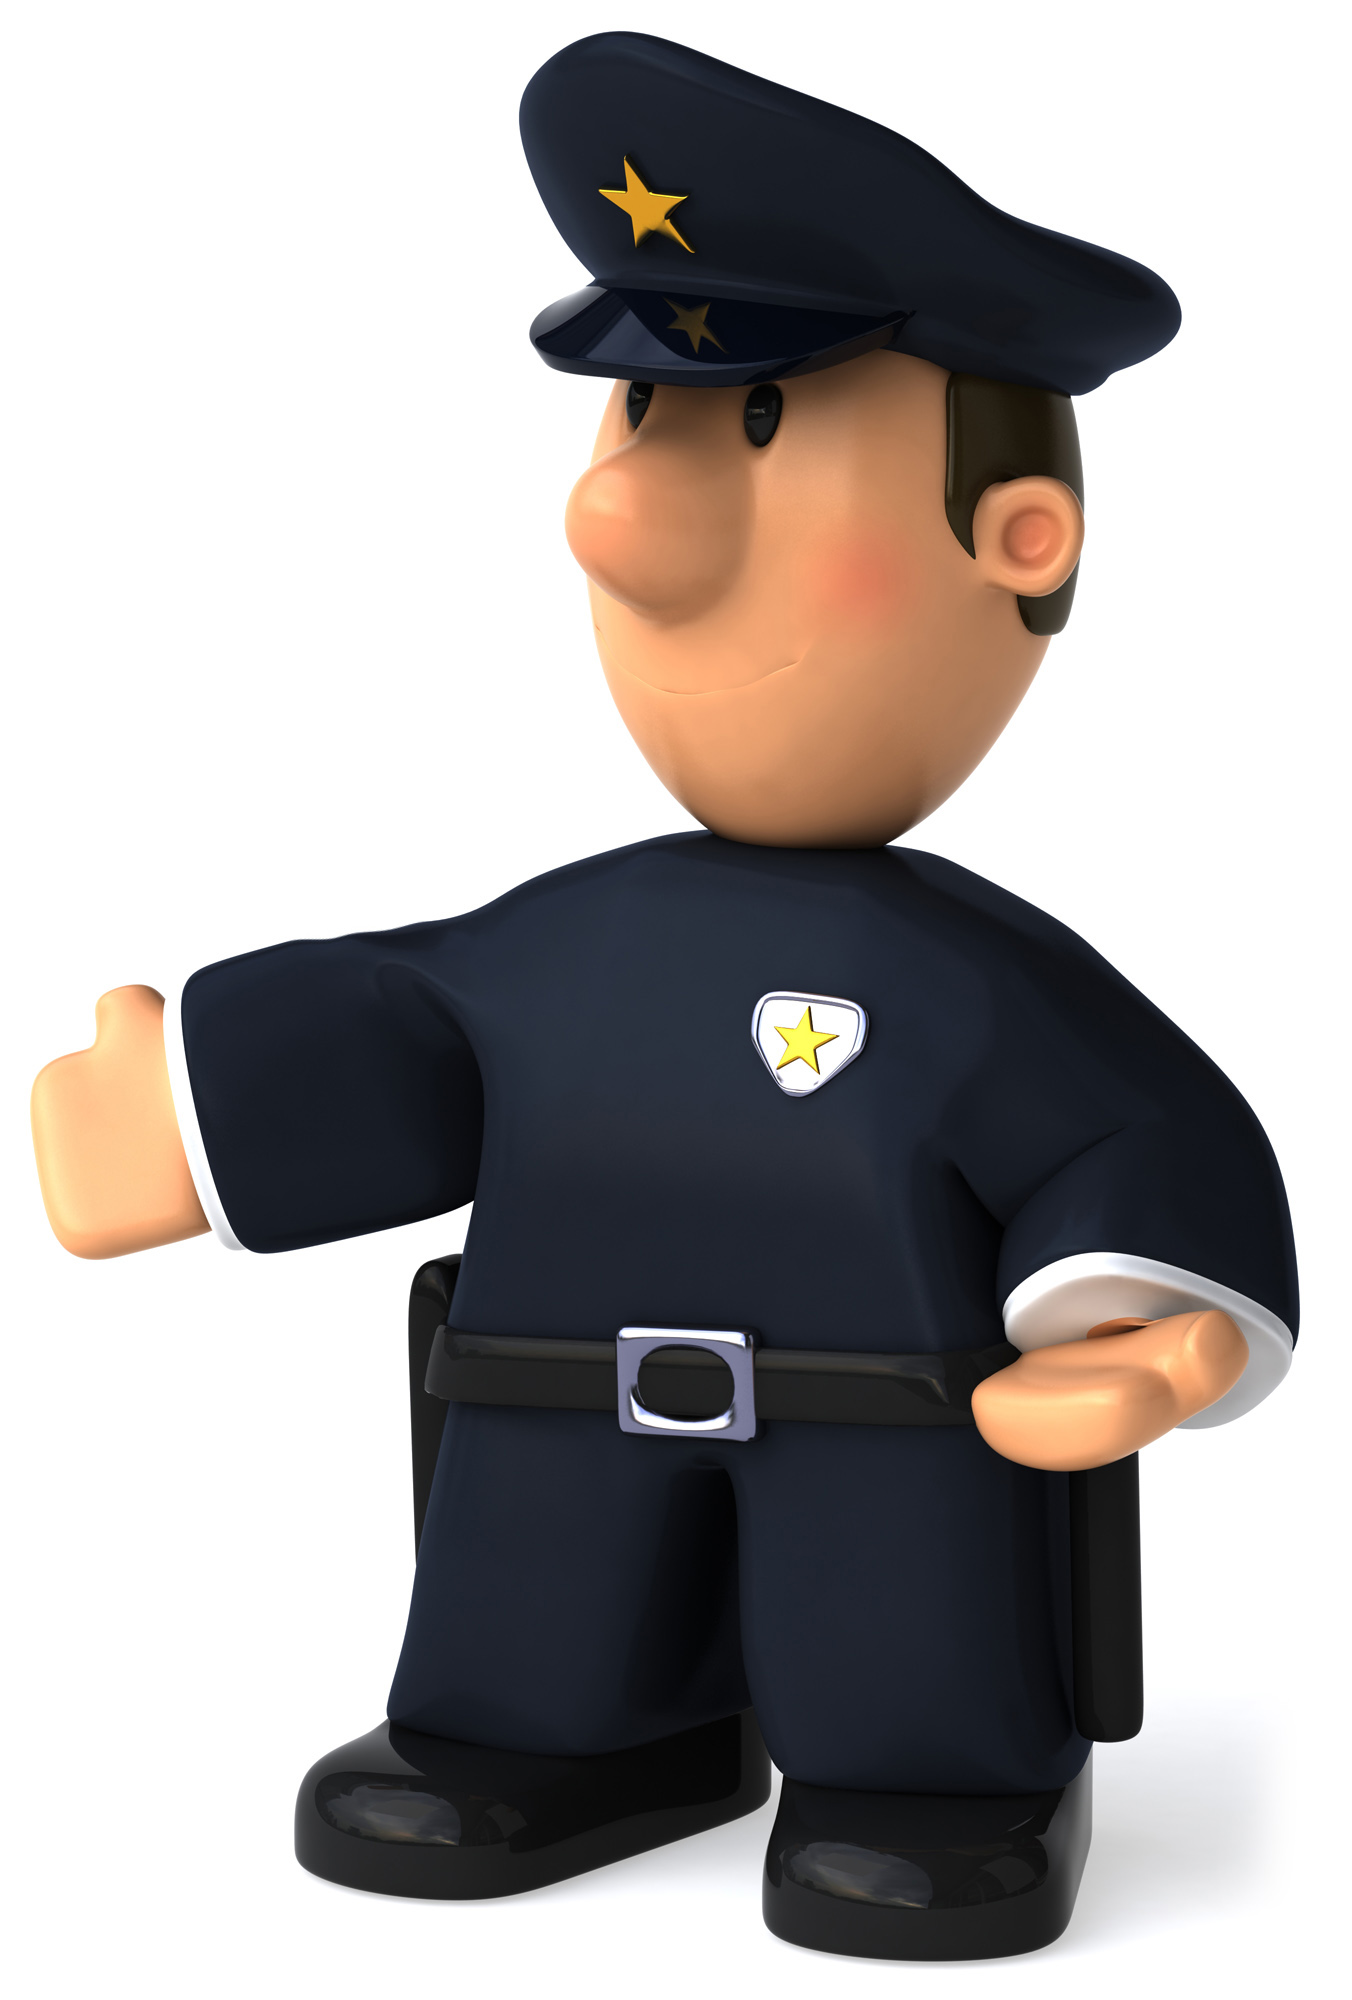 Police officer, Pistol, Order, Law, Police, HQ Photo